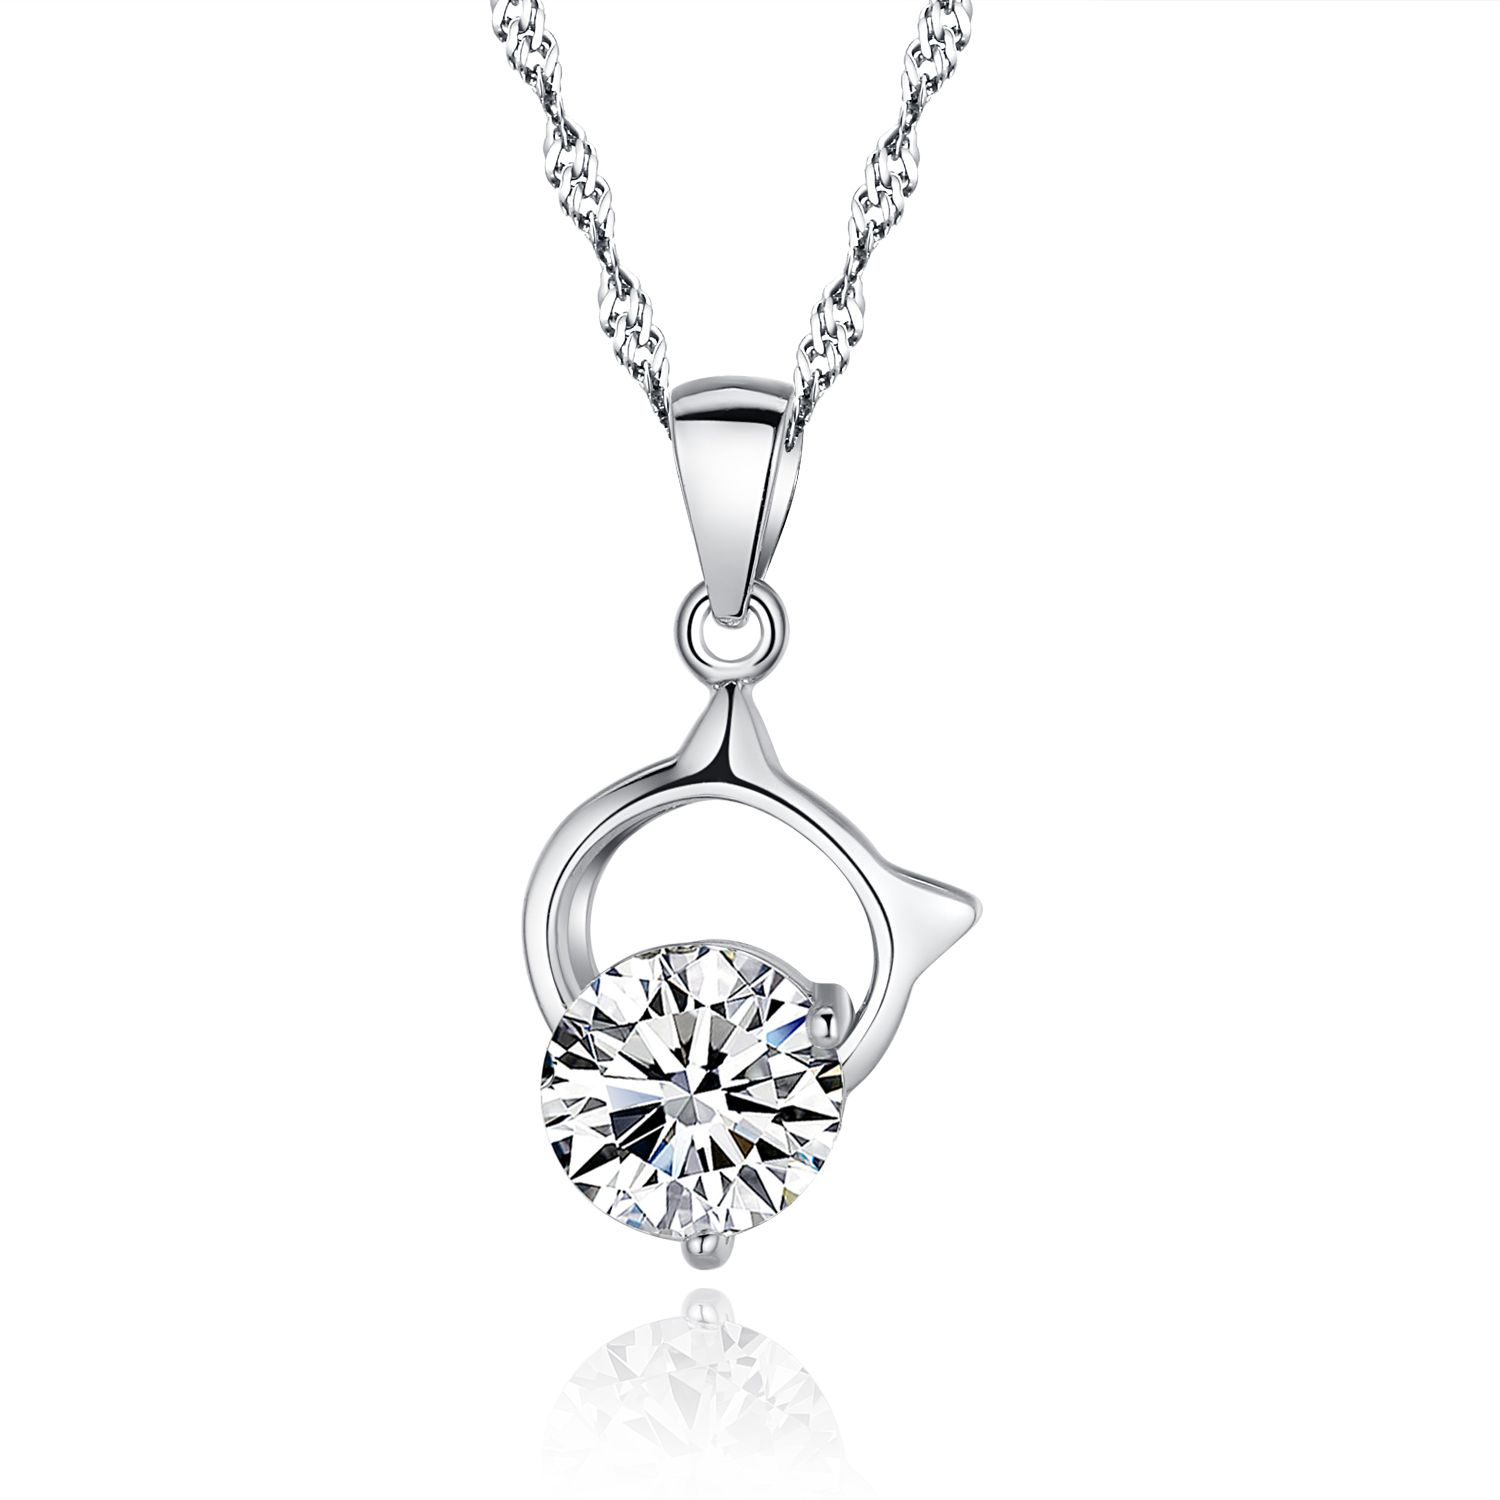 Women's / Girl's 925 Sterling Silver 14 mm Openwork Star Necklace with 45 cm Adjustable Reinforced Chain Cl3JlpEV